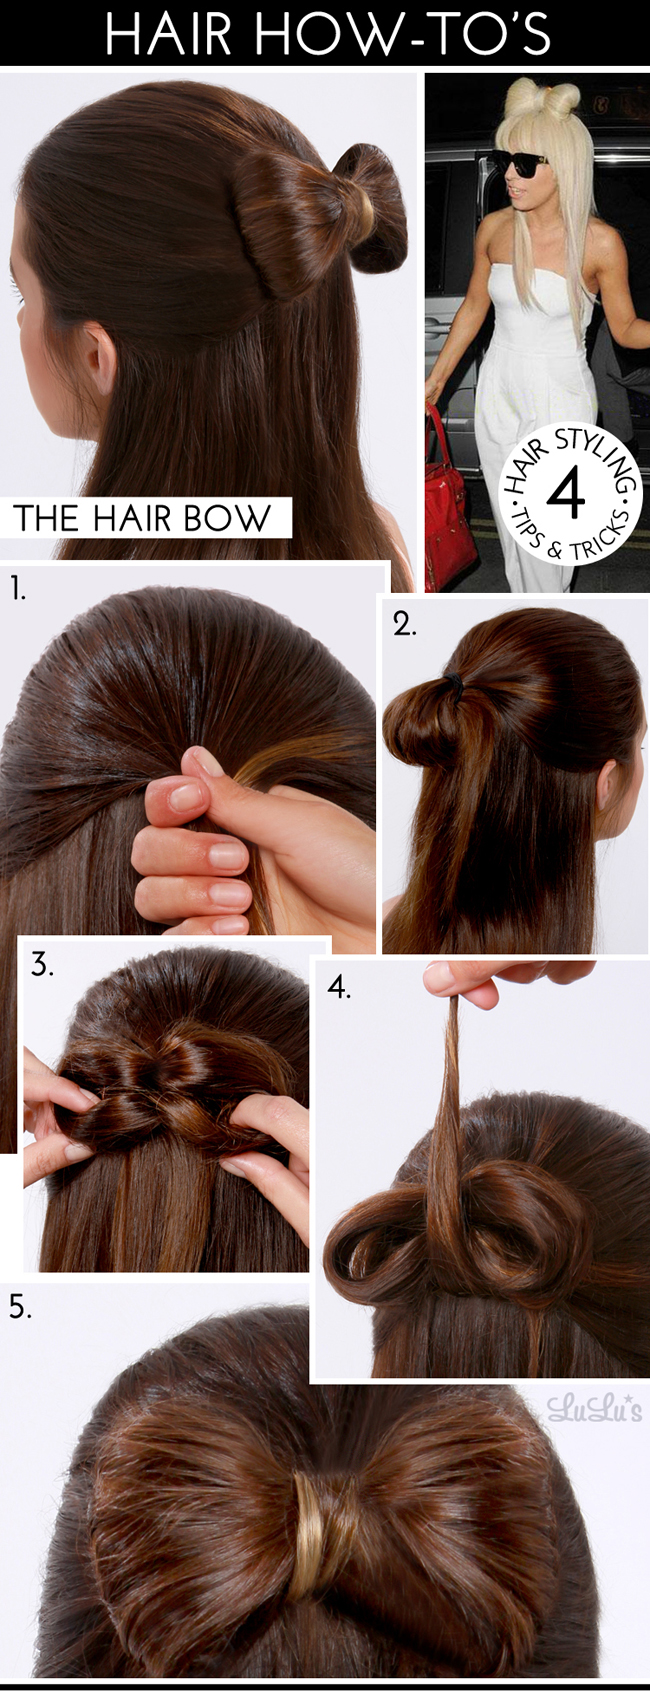 10 Pretty Hairstyles To Experiment With At Home